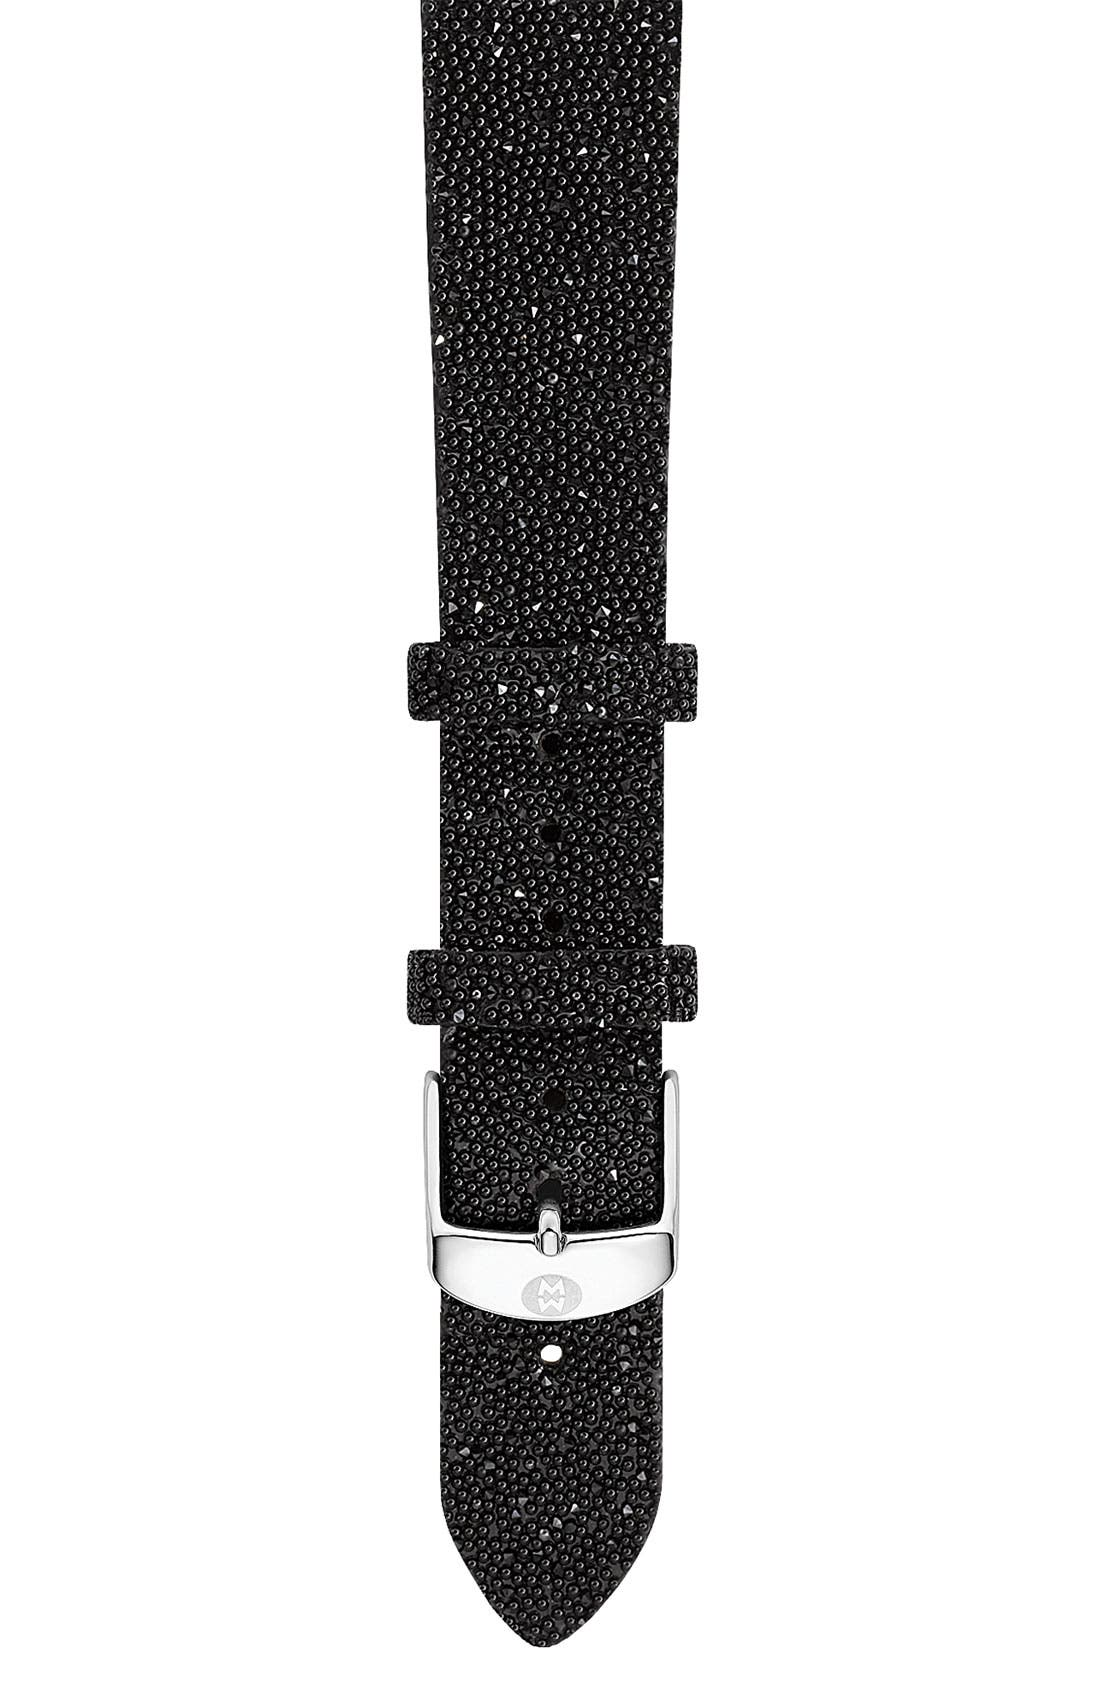 Alternate Image 1 Selected - MICHELE 'Deco Diamond' Watch Case & 18mm Glitter Strap